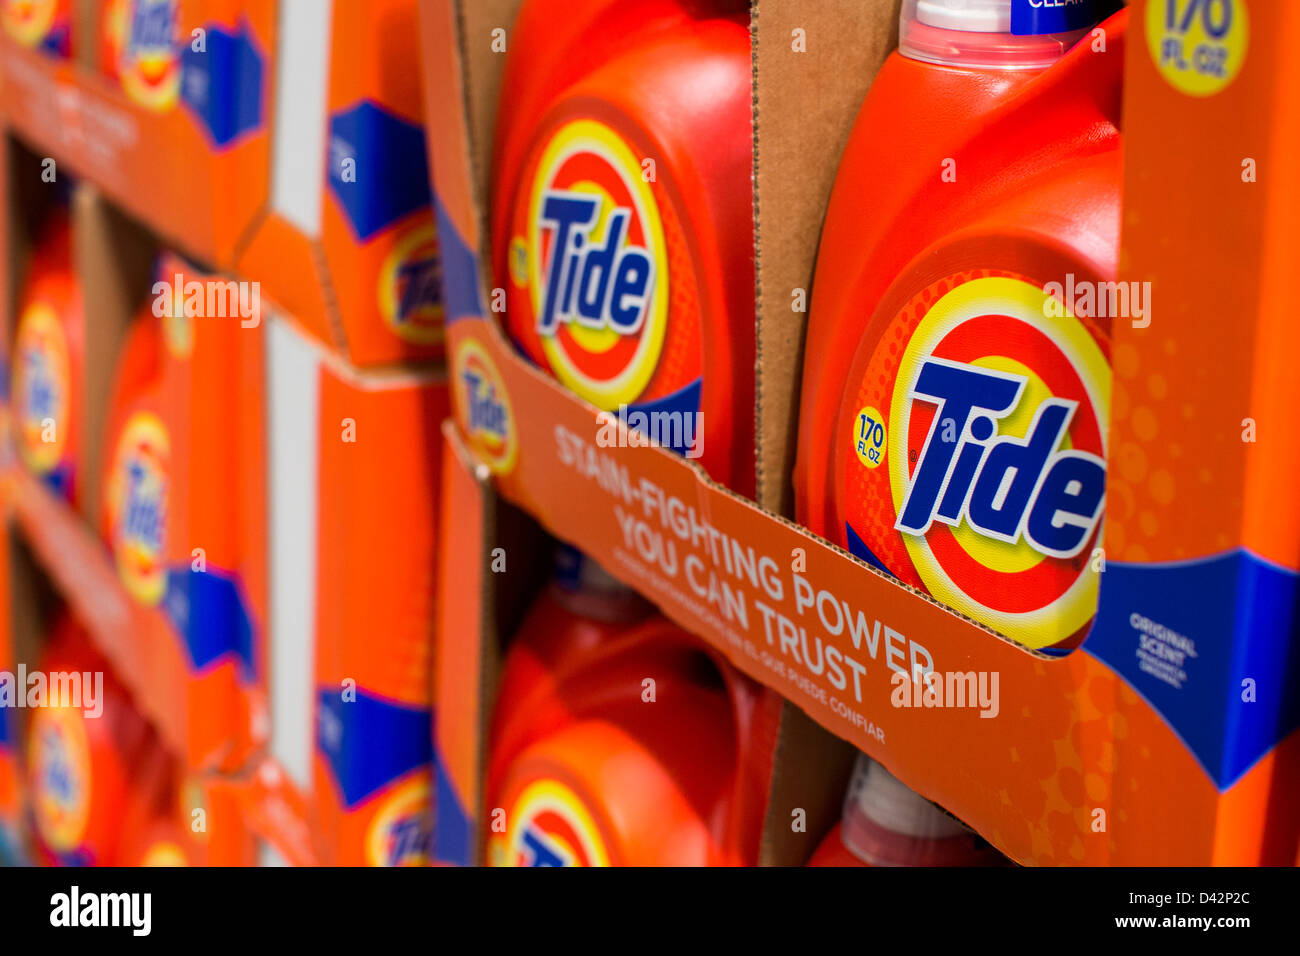 Tide laundry detergent on display at a Costco Wholesale Warehouse Club. - Stock Image